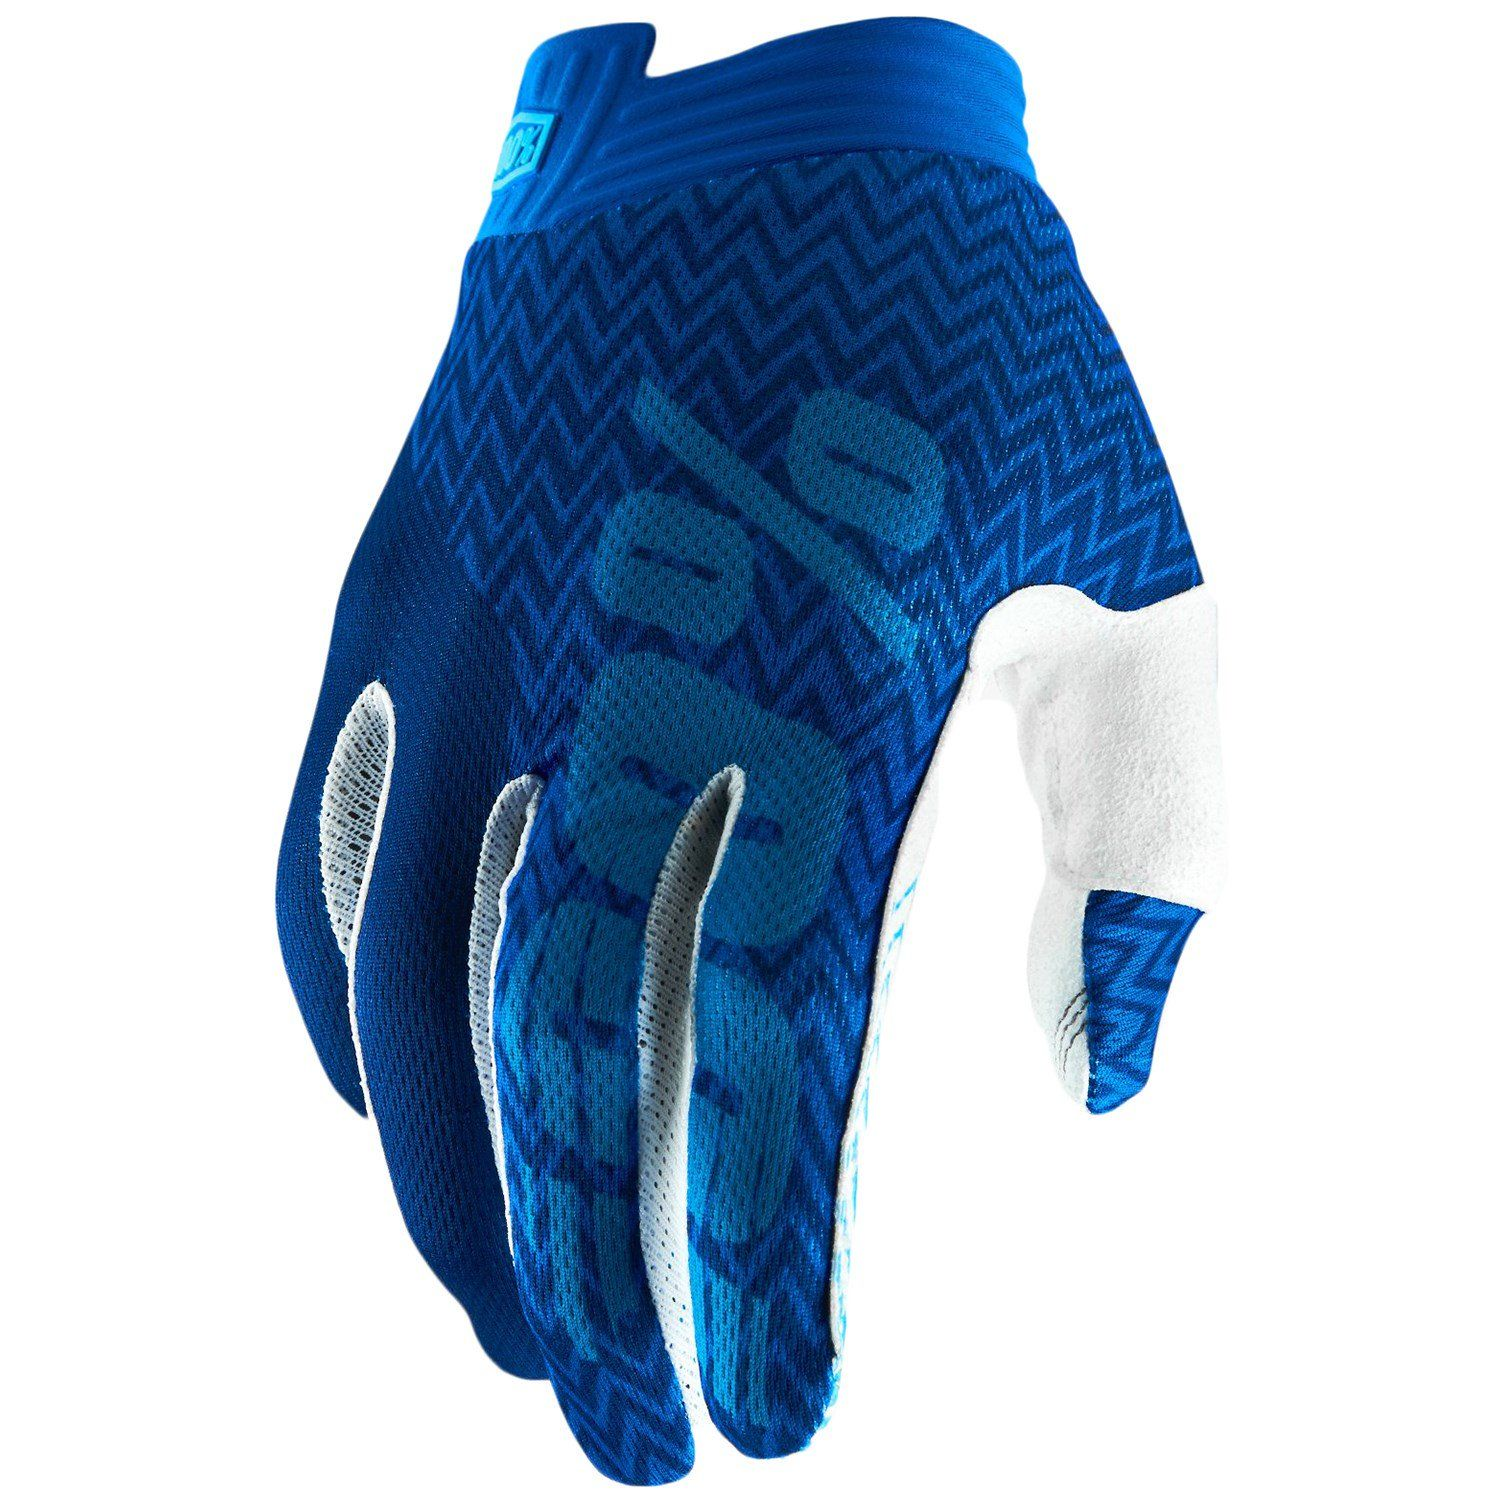 100 Itrack Bike Gloves 2019 2x Large In Blue Leather Polyster In 2020 Gloves Bike Gloves Cycling Outfit